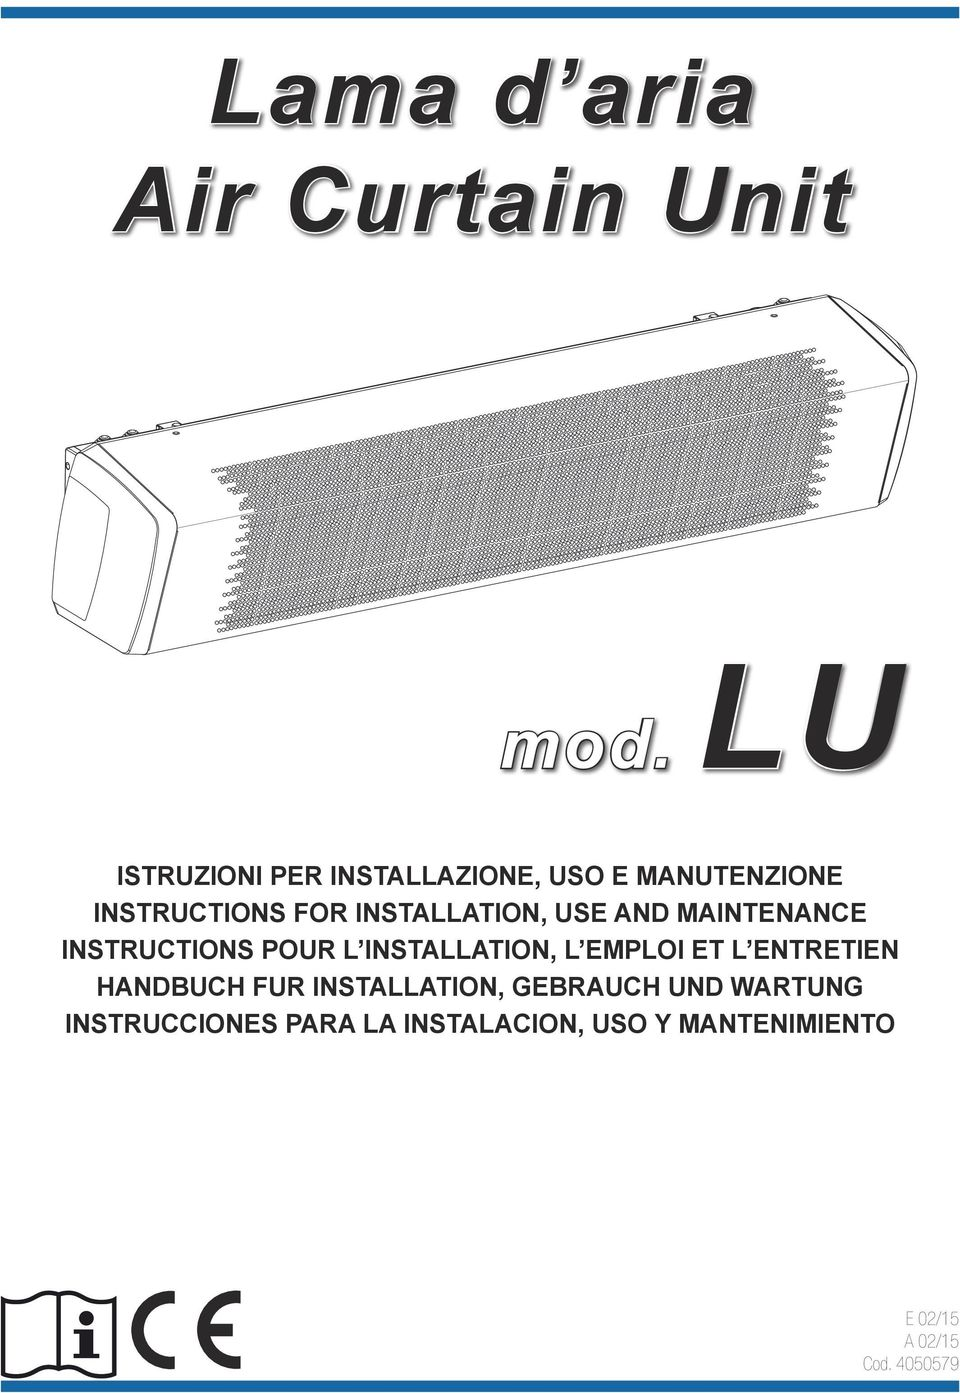 INSTALLATION, USE AND MAINTENANCE INSTRUCTIONS POUR L INSTALLATION, L EMPLOI ET